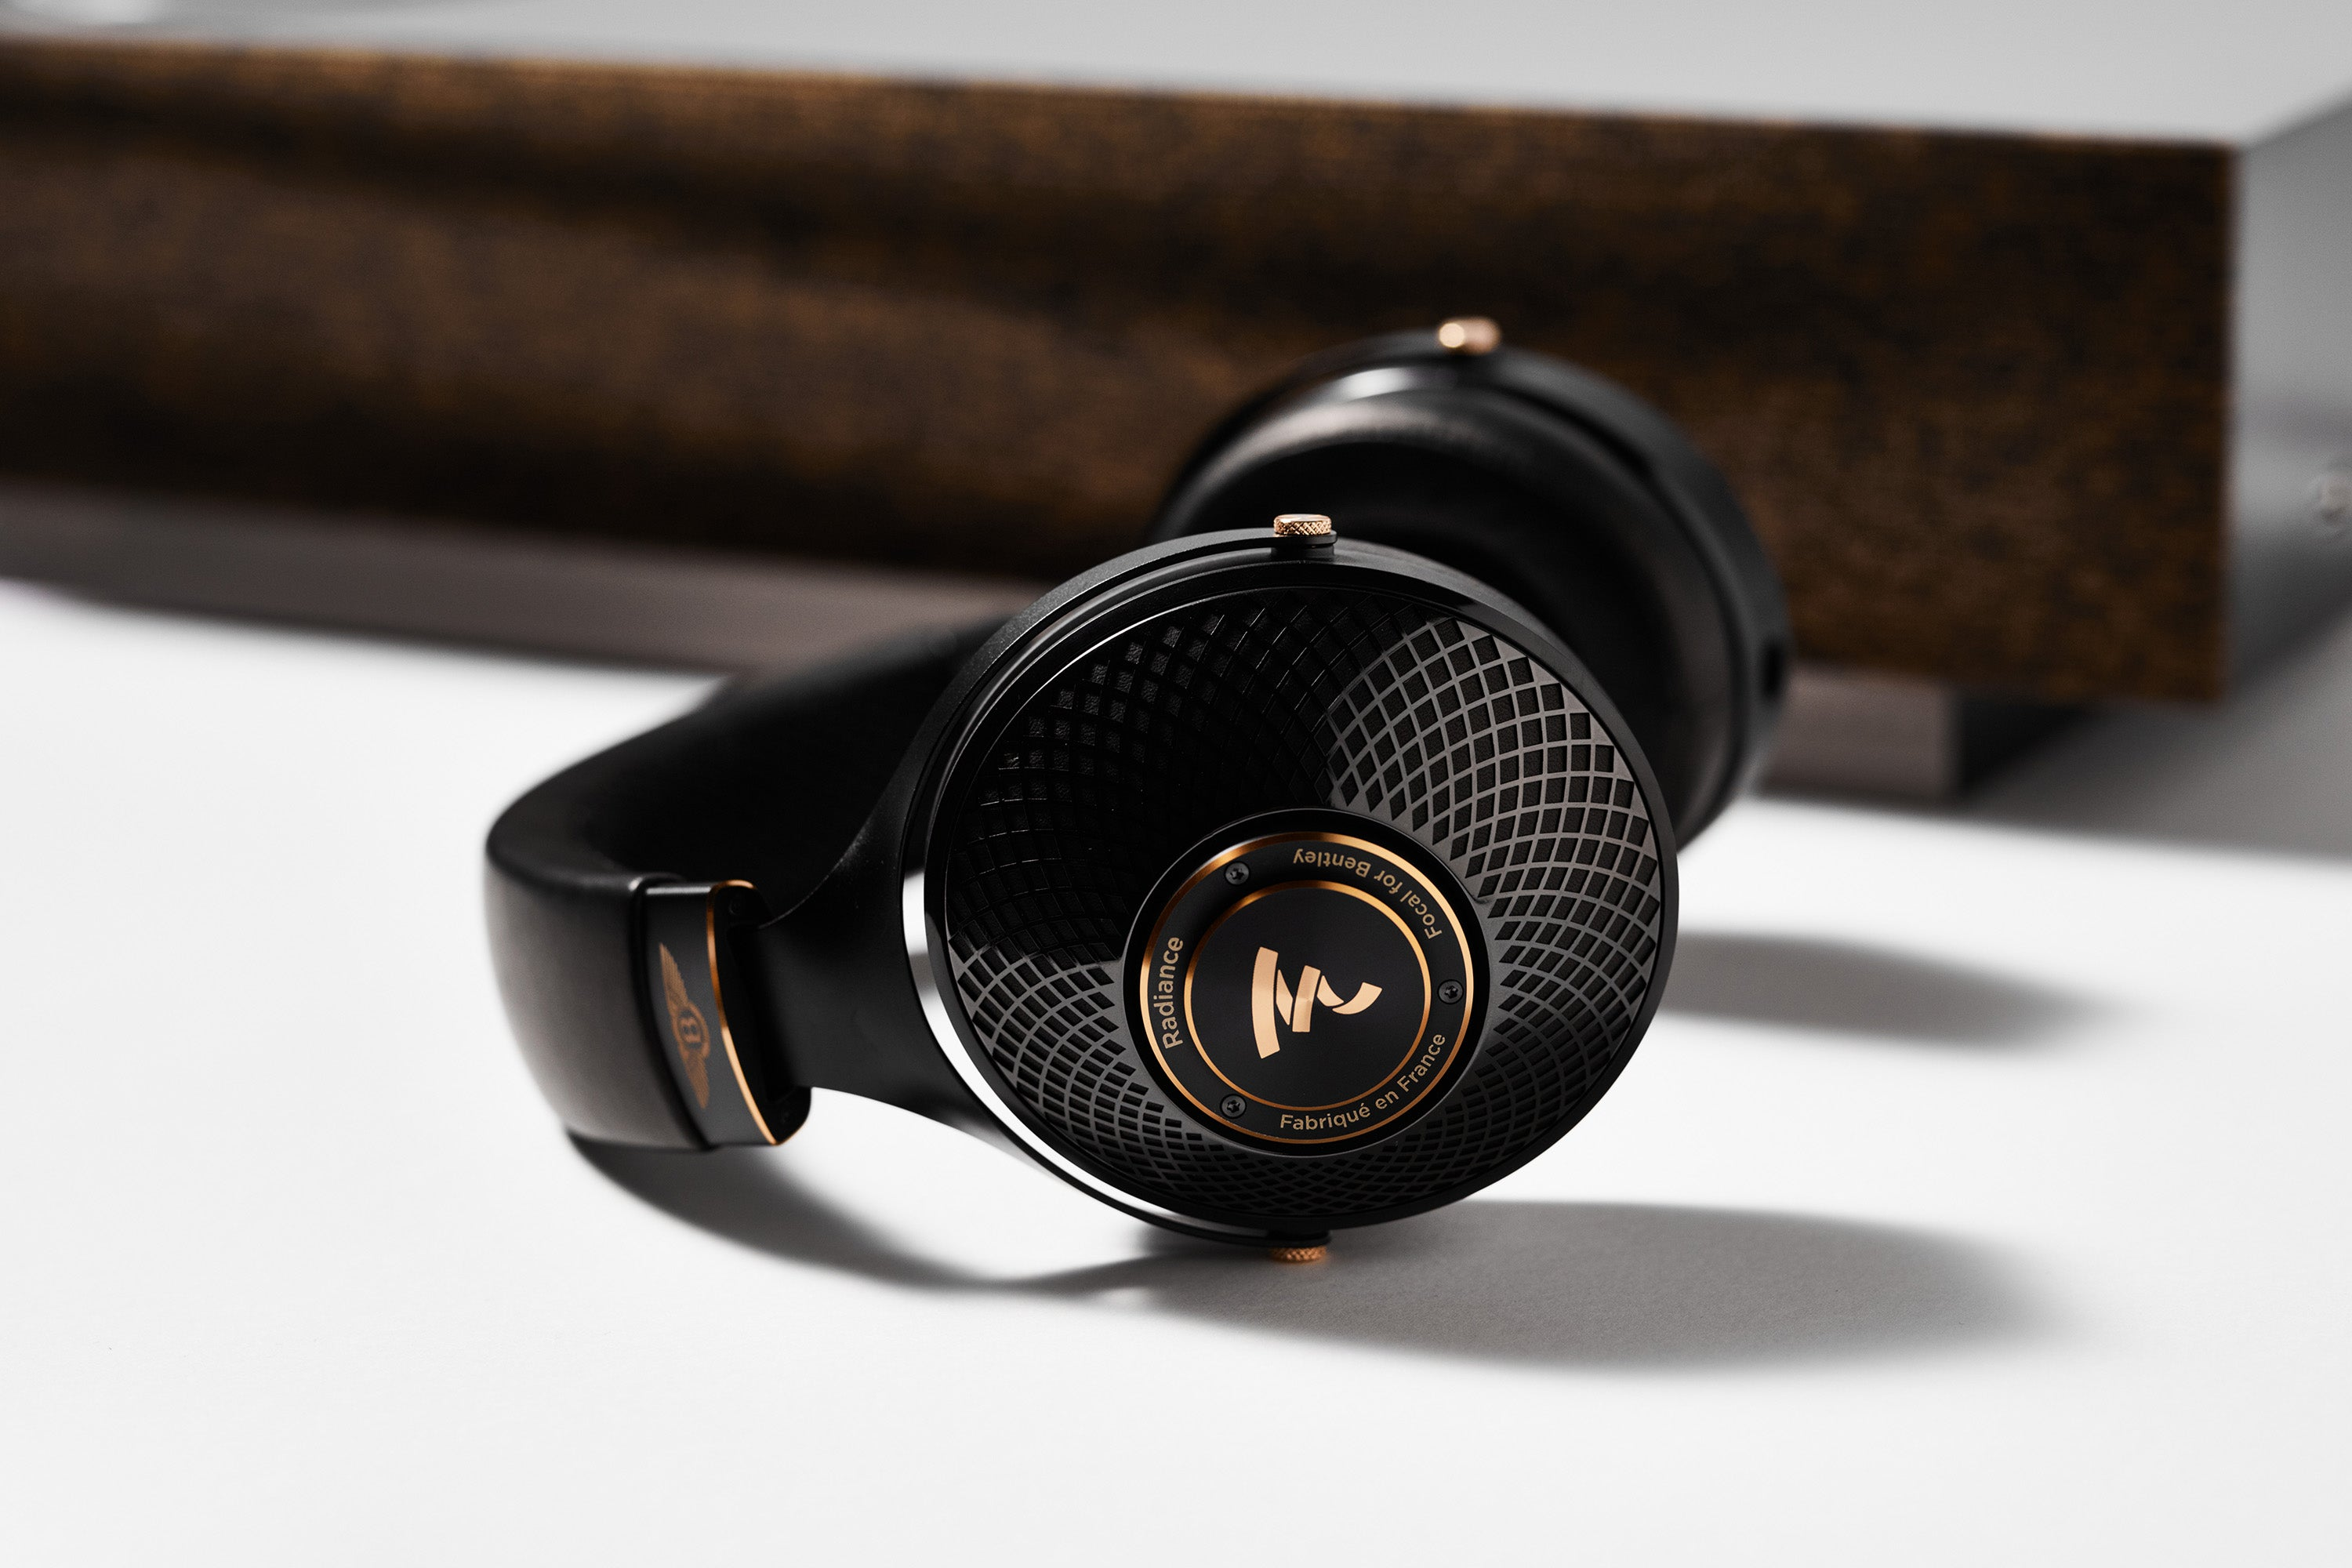 Focal Radiance Closed-Back Headphones in Partnership with Bentley | Headphones.com